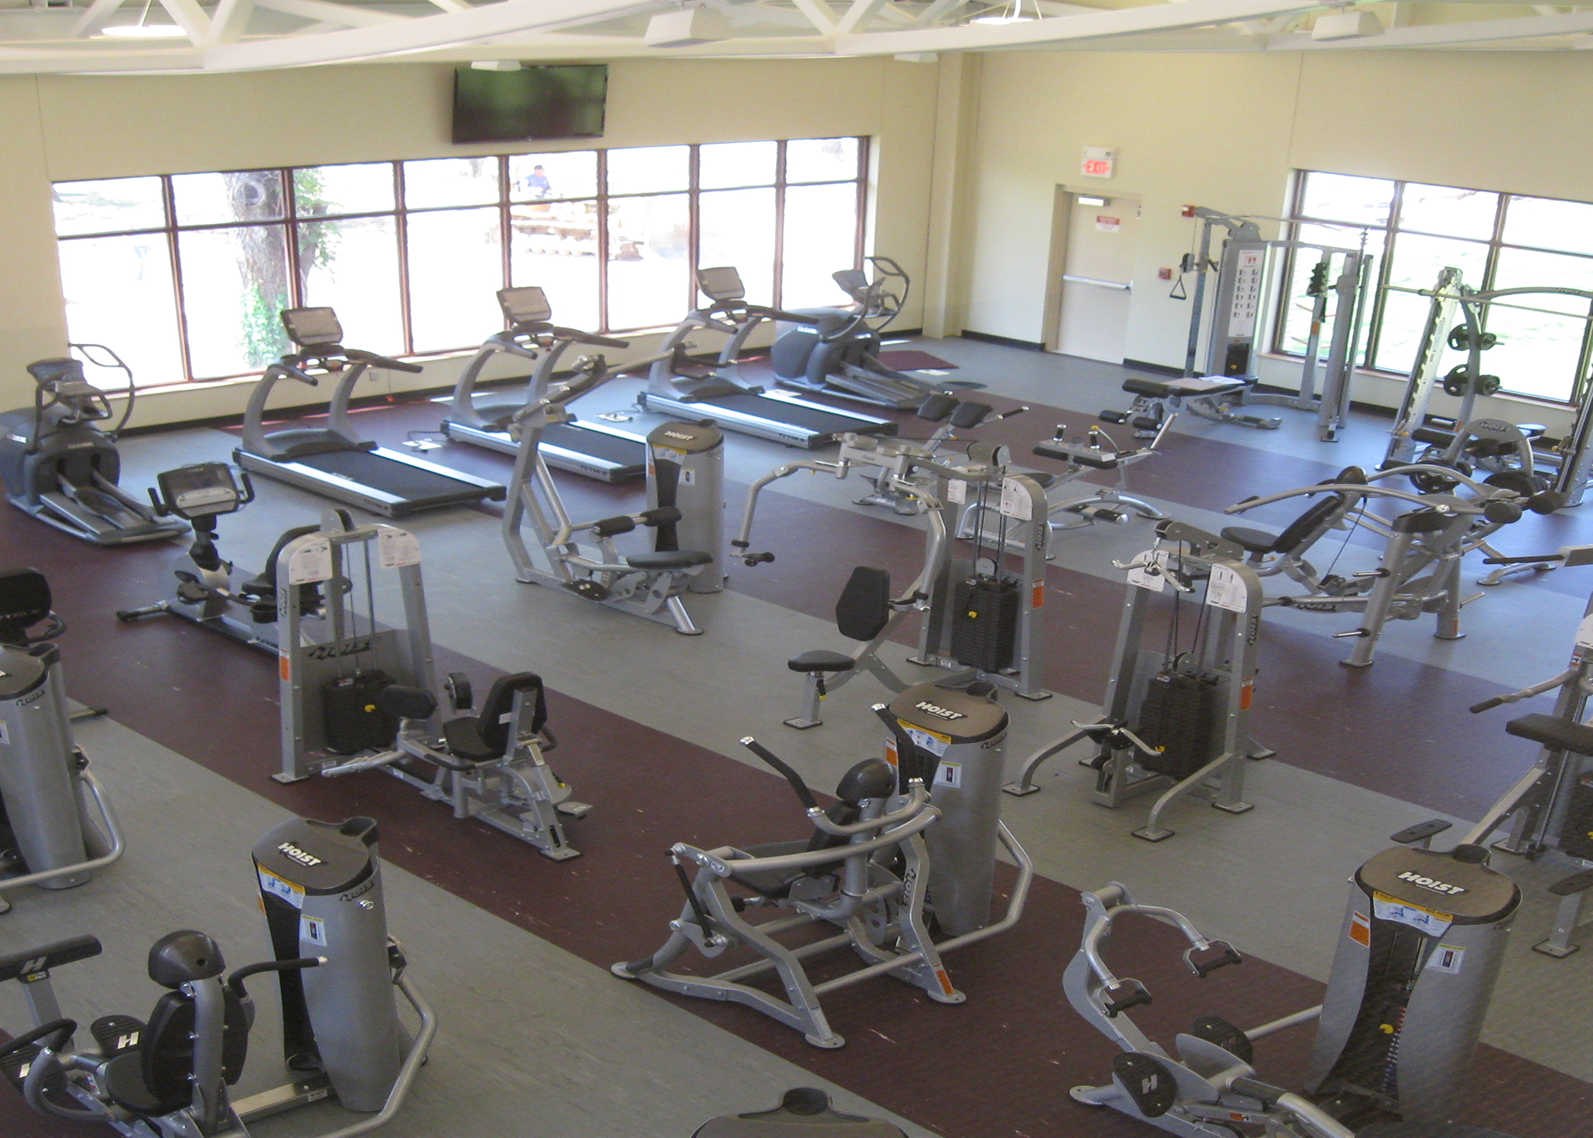 Fitness Center gym area at College of the Ozarks